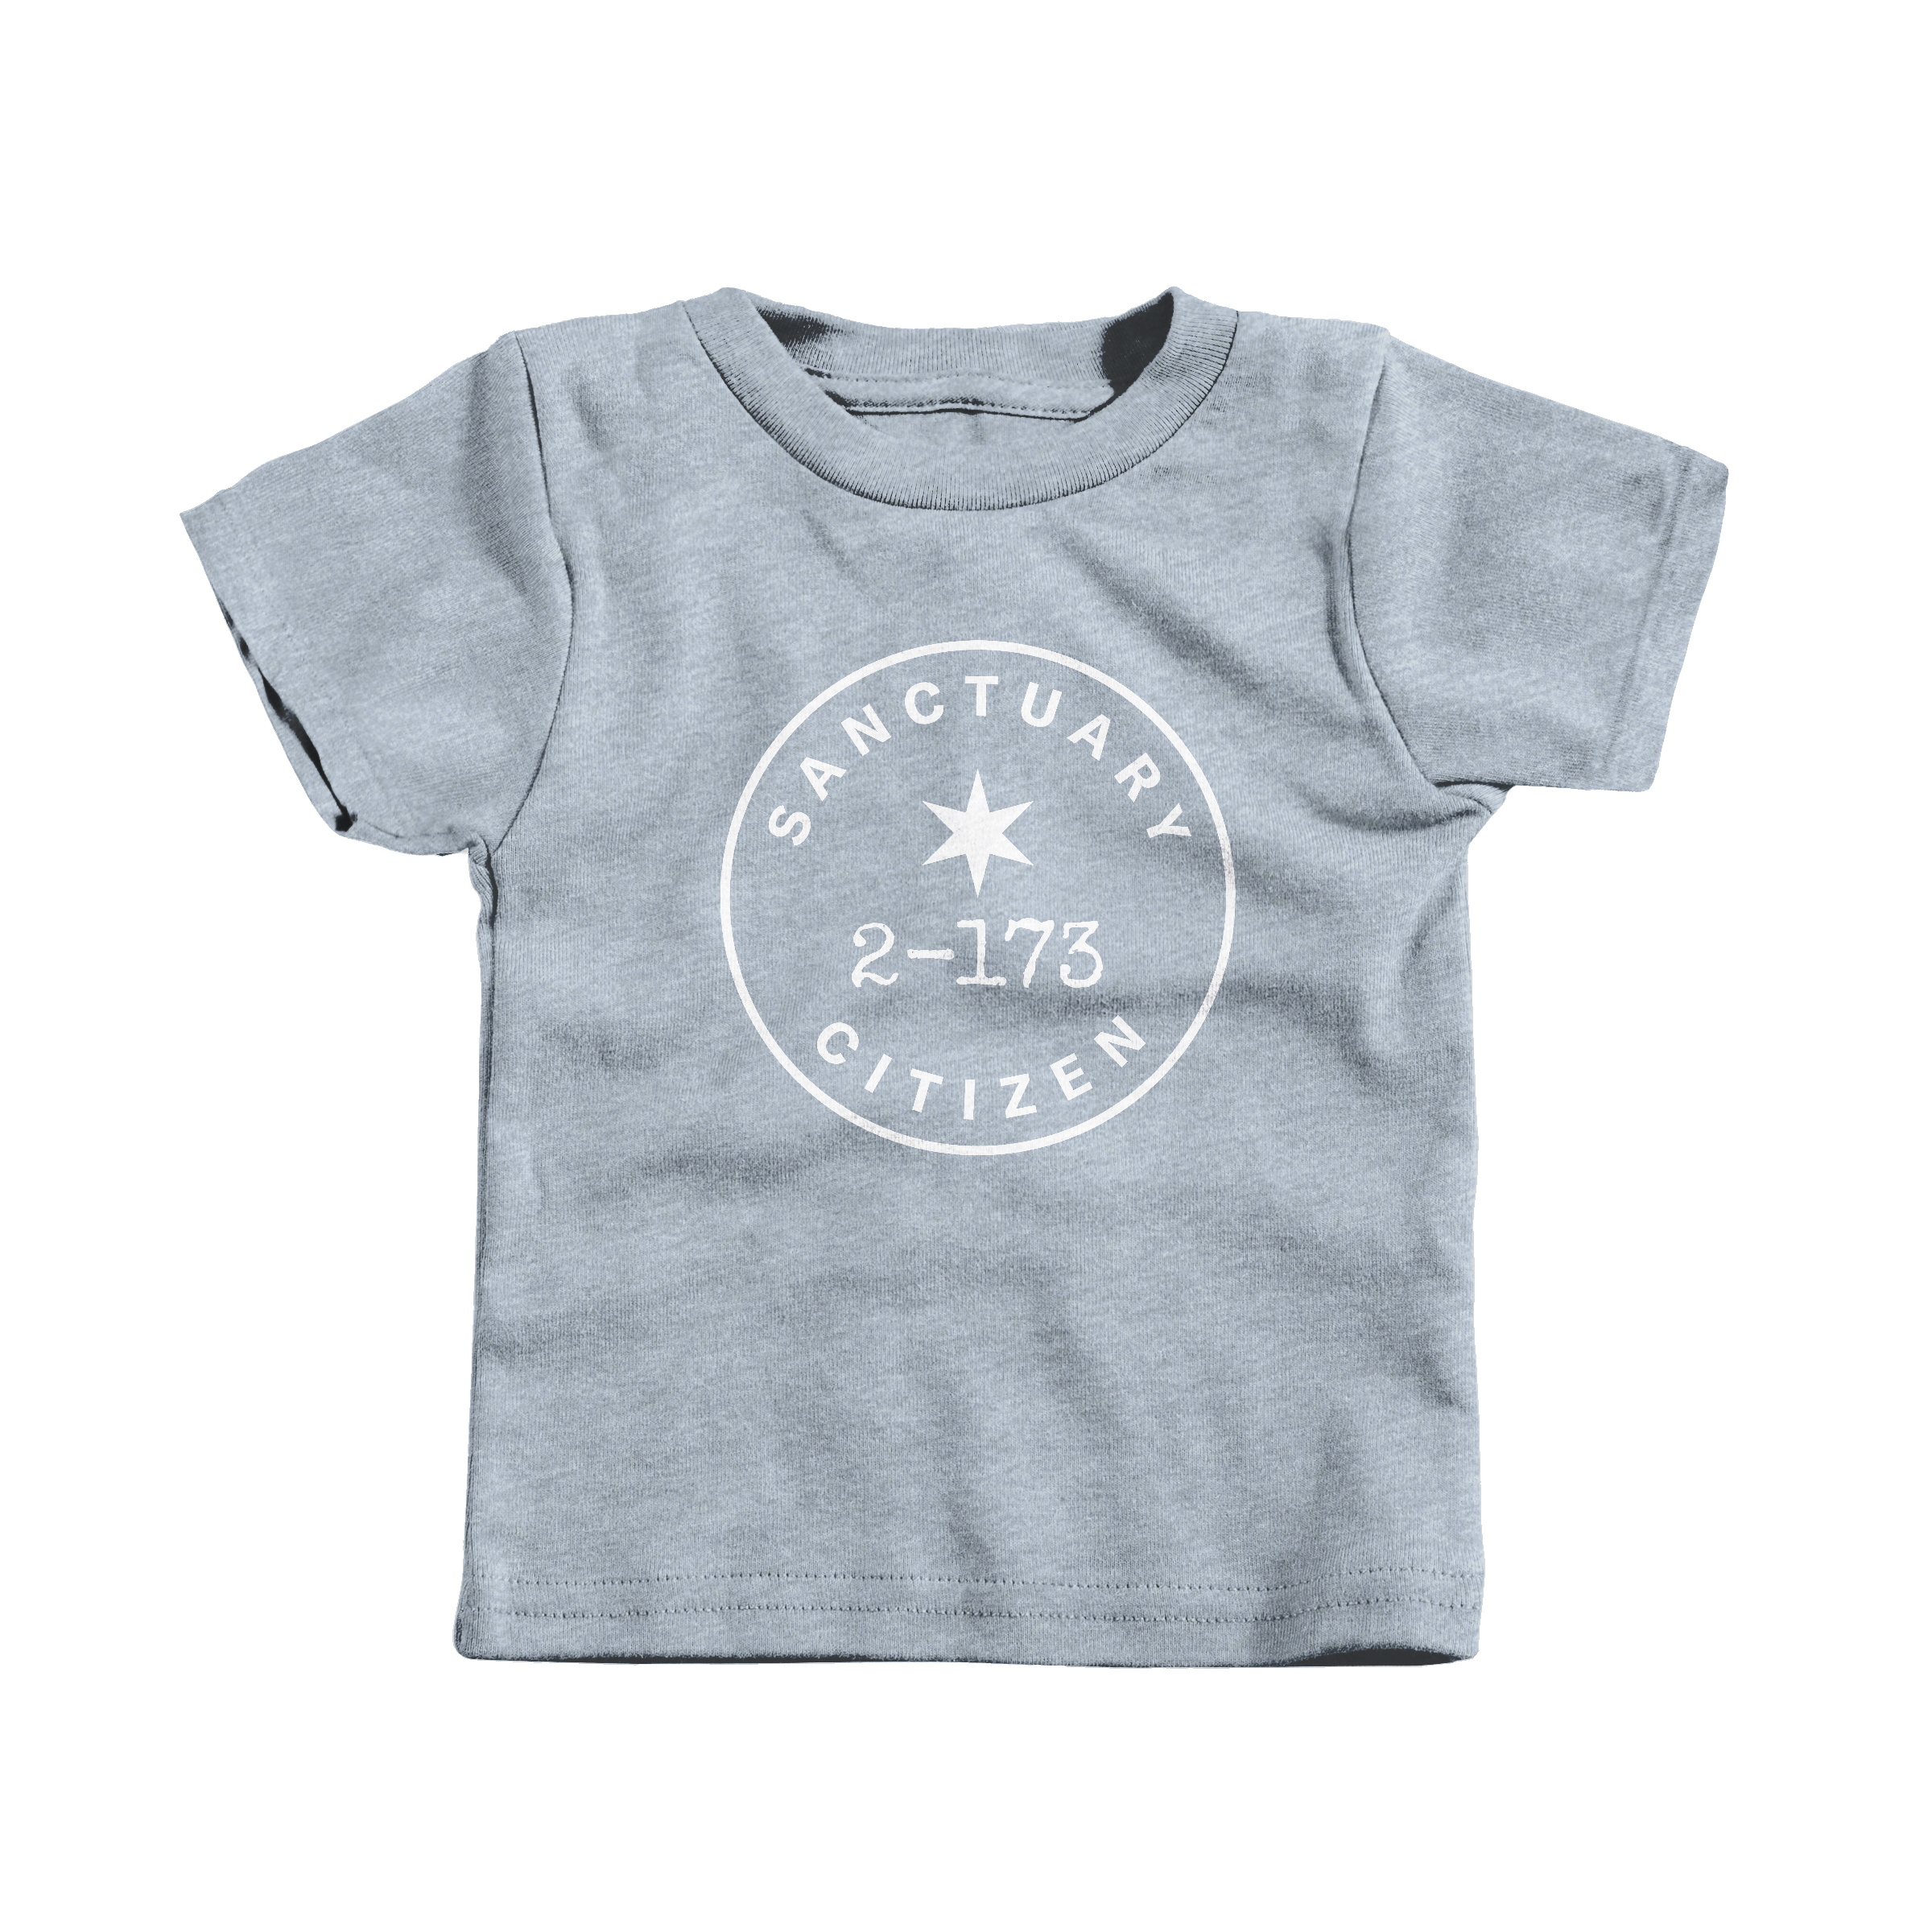 Sanctuary Citizen Heather Grey (T-Shirt)